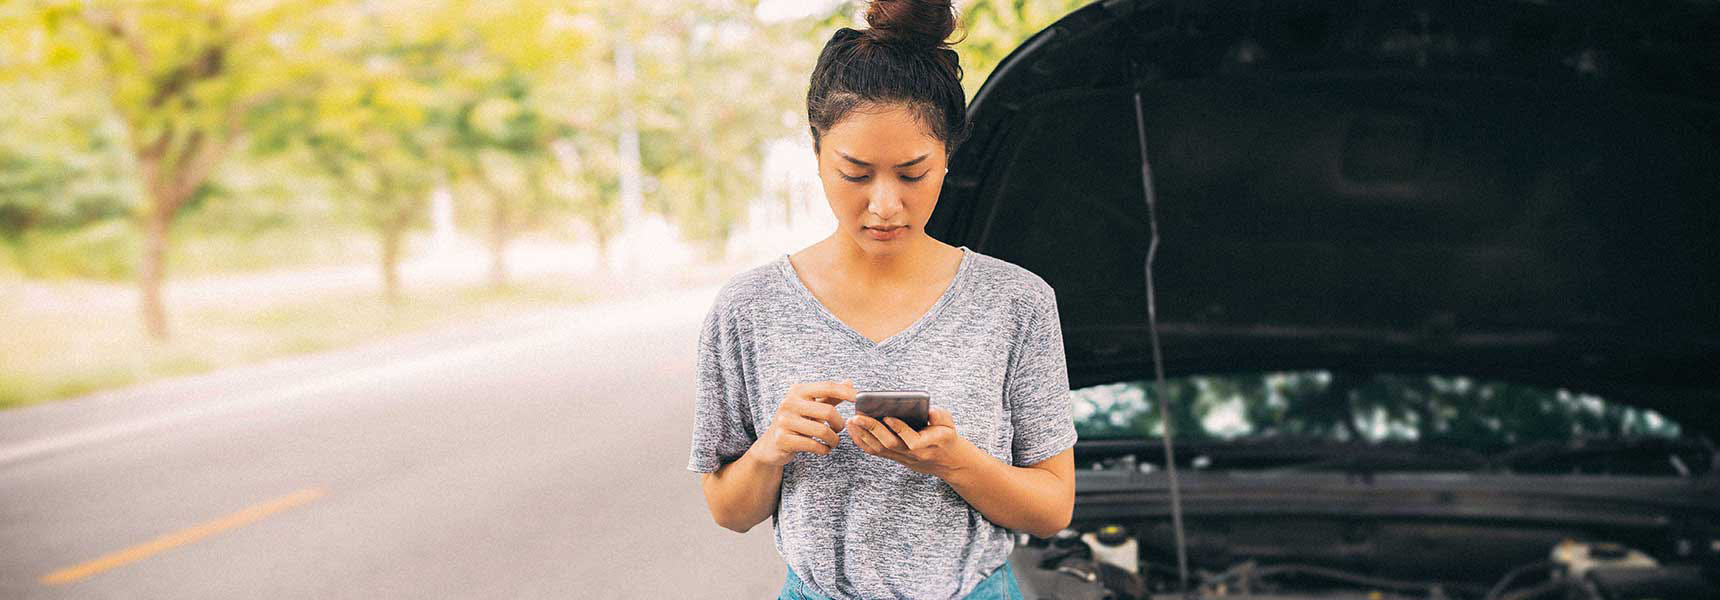 Photo of a woman with a broken down car.